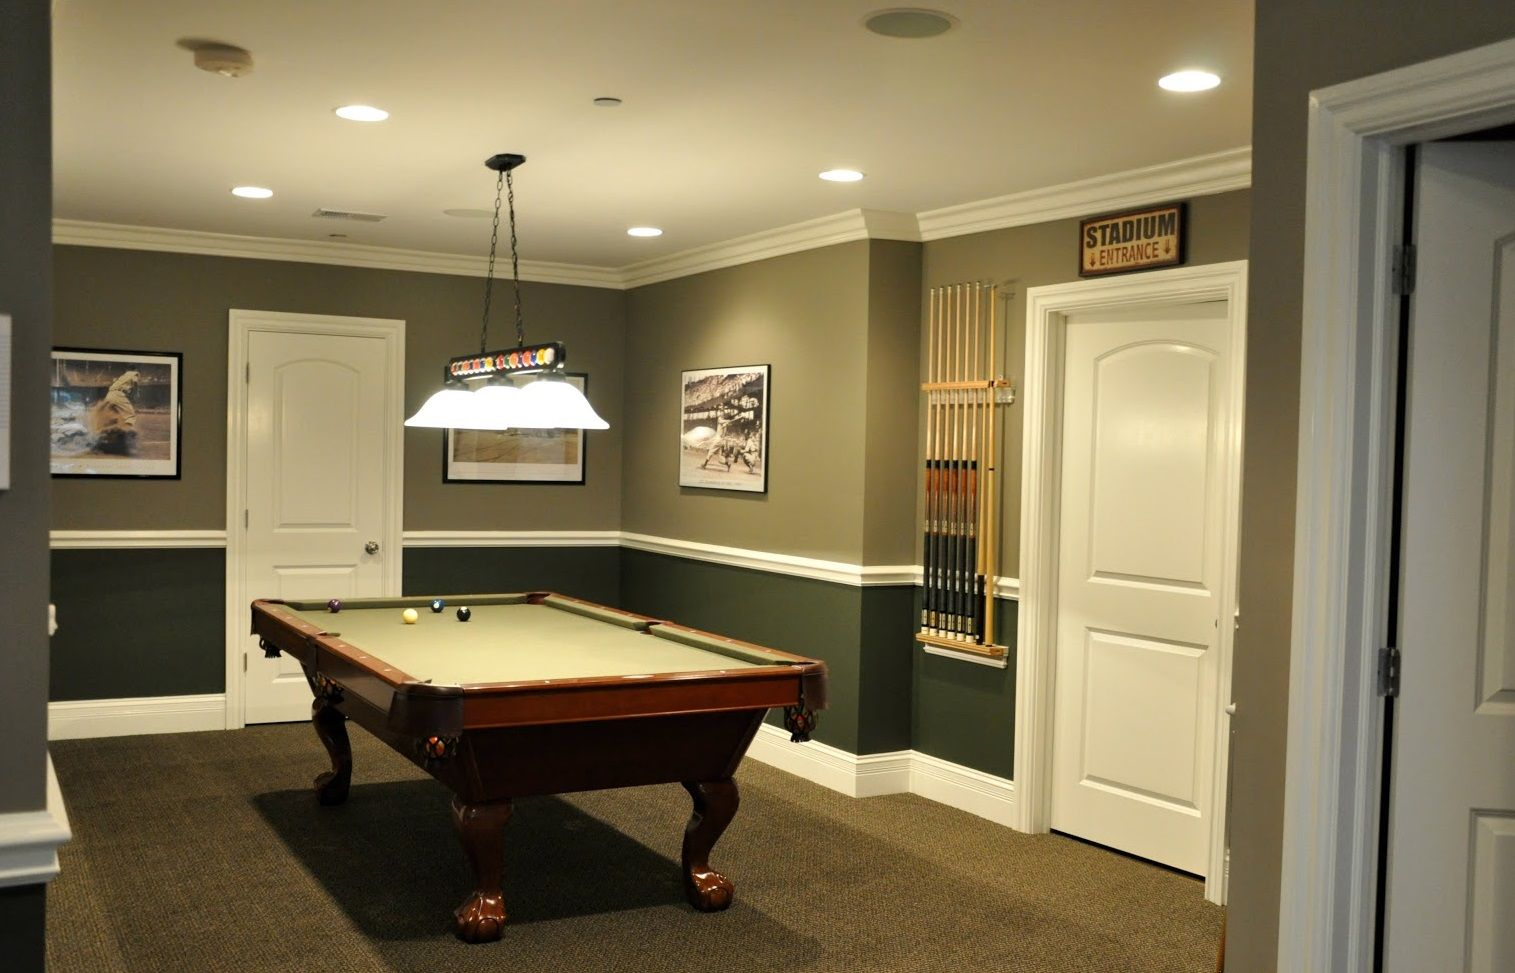 Browse Basement Pictures Discover A Variety Of Finished Basement Ideas Layouts And Decor To Inspire Y Basement Wall Colors Pool Table Room Game Room Basement